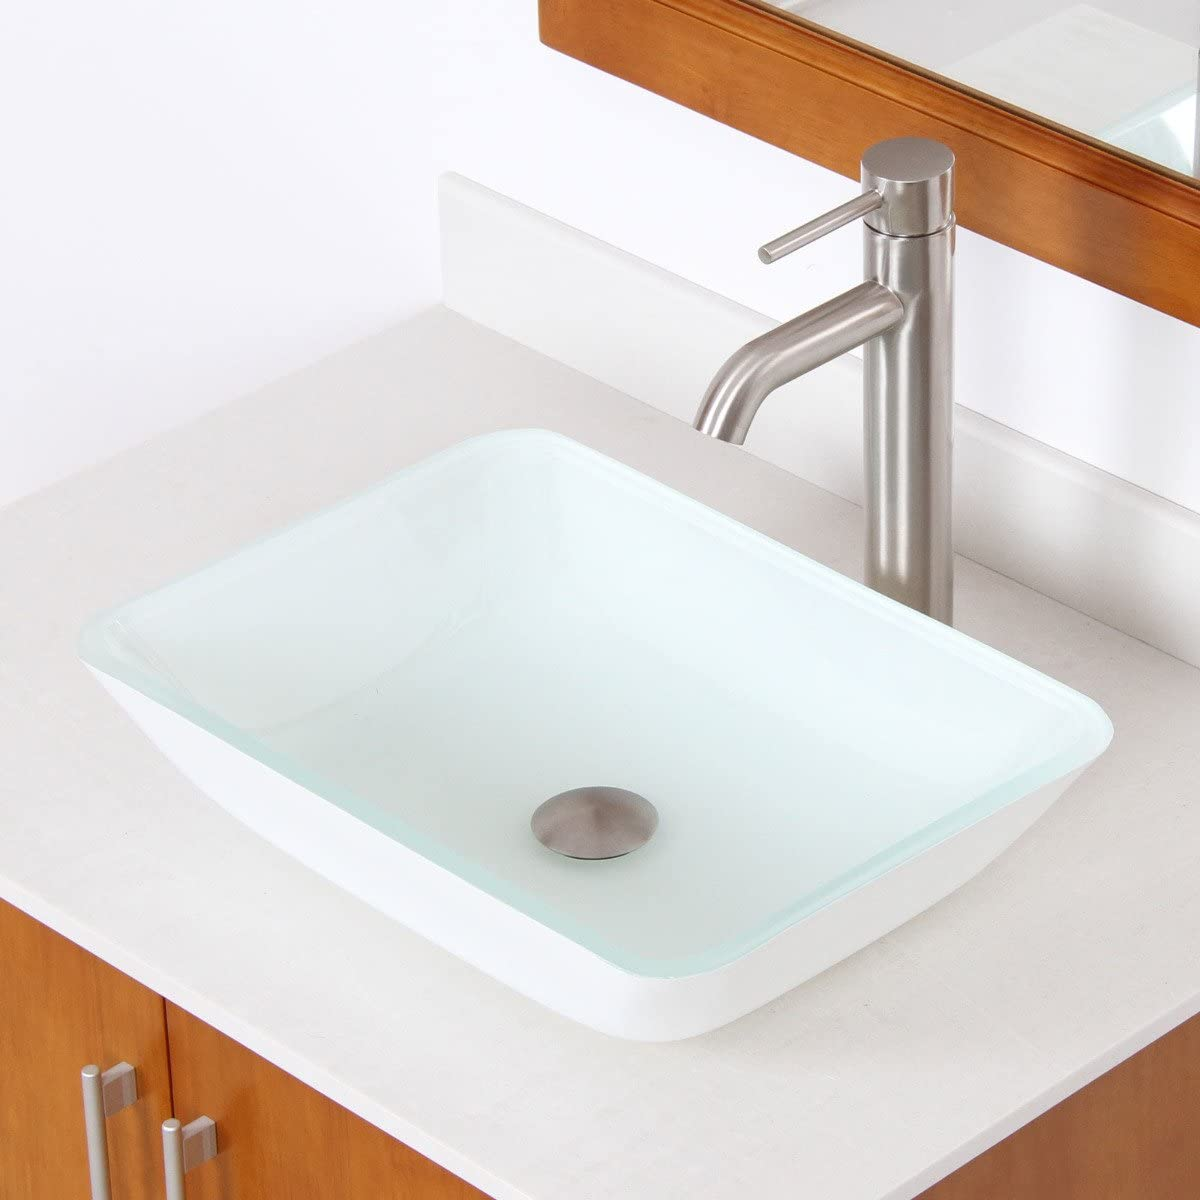 ELITE Tempered Rectangle Bathroom White Pattern Glass Vessel Sink Brushed Nickel Faucet Combo